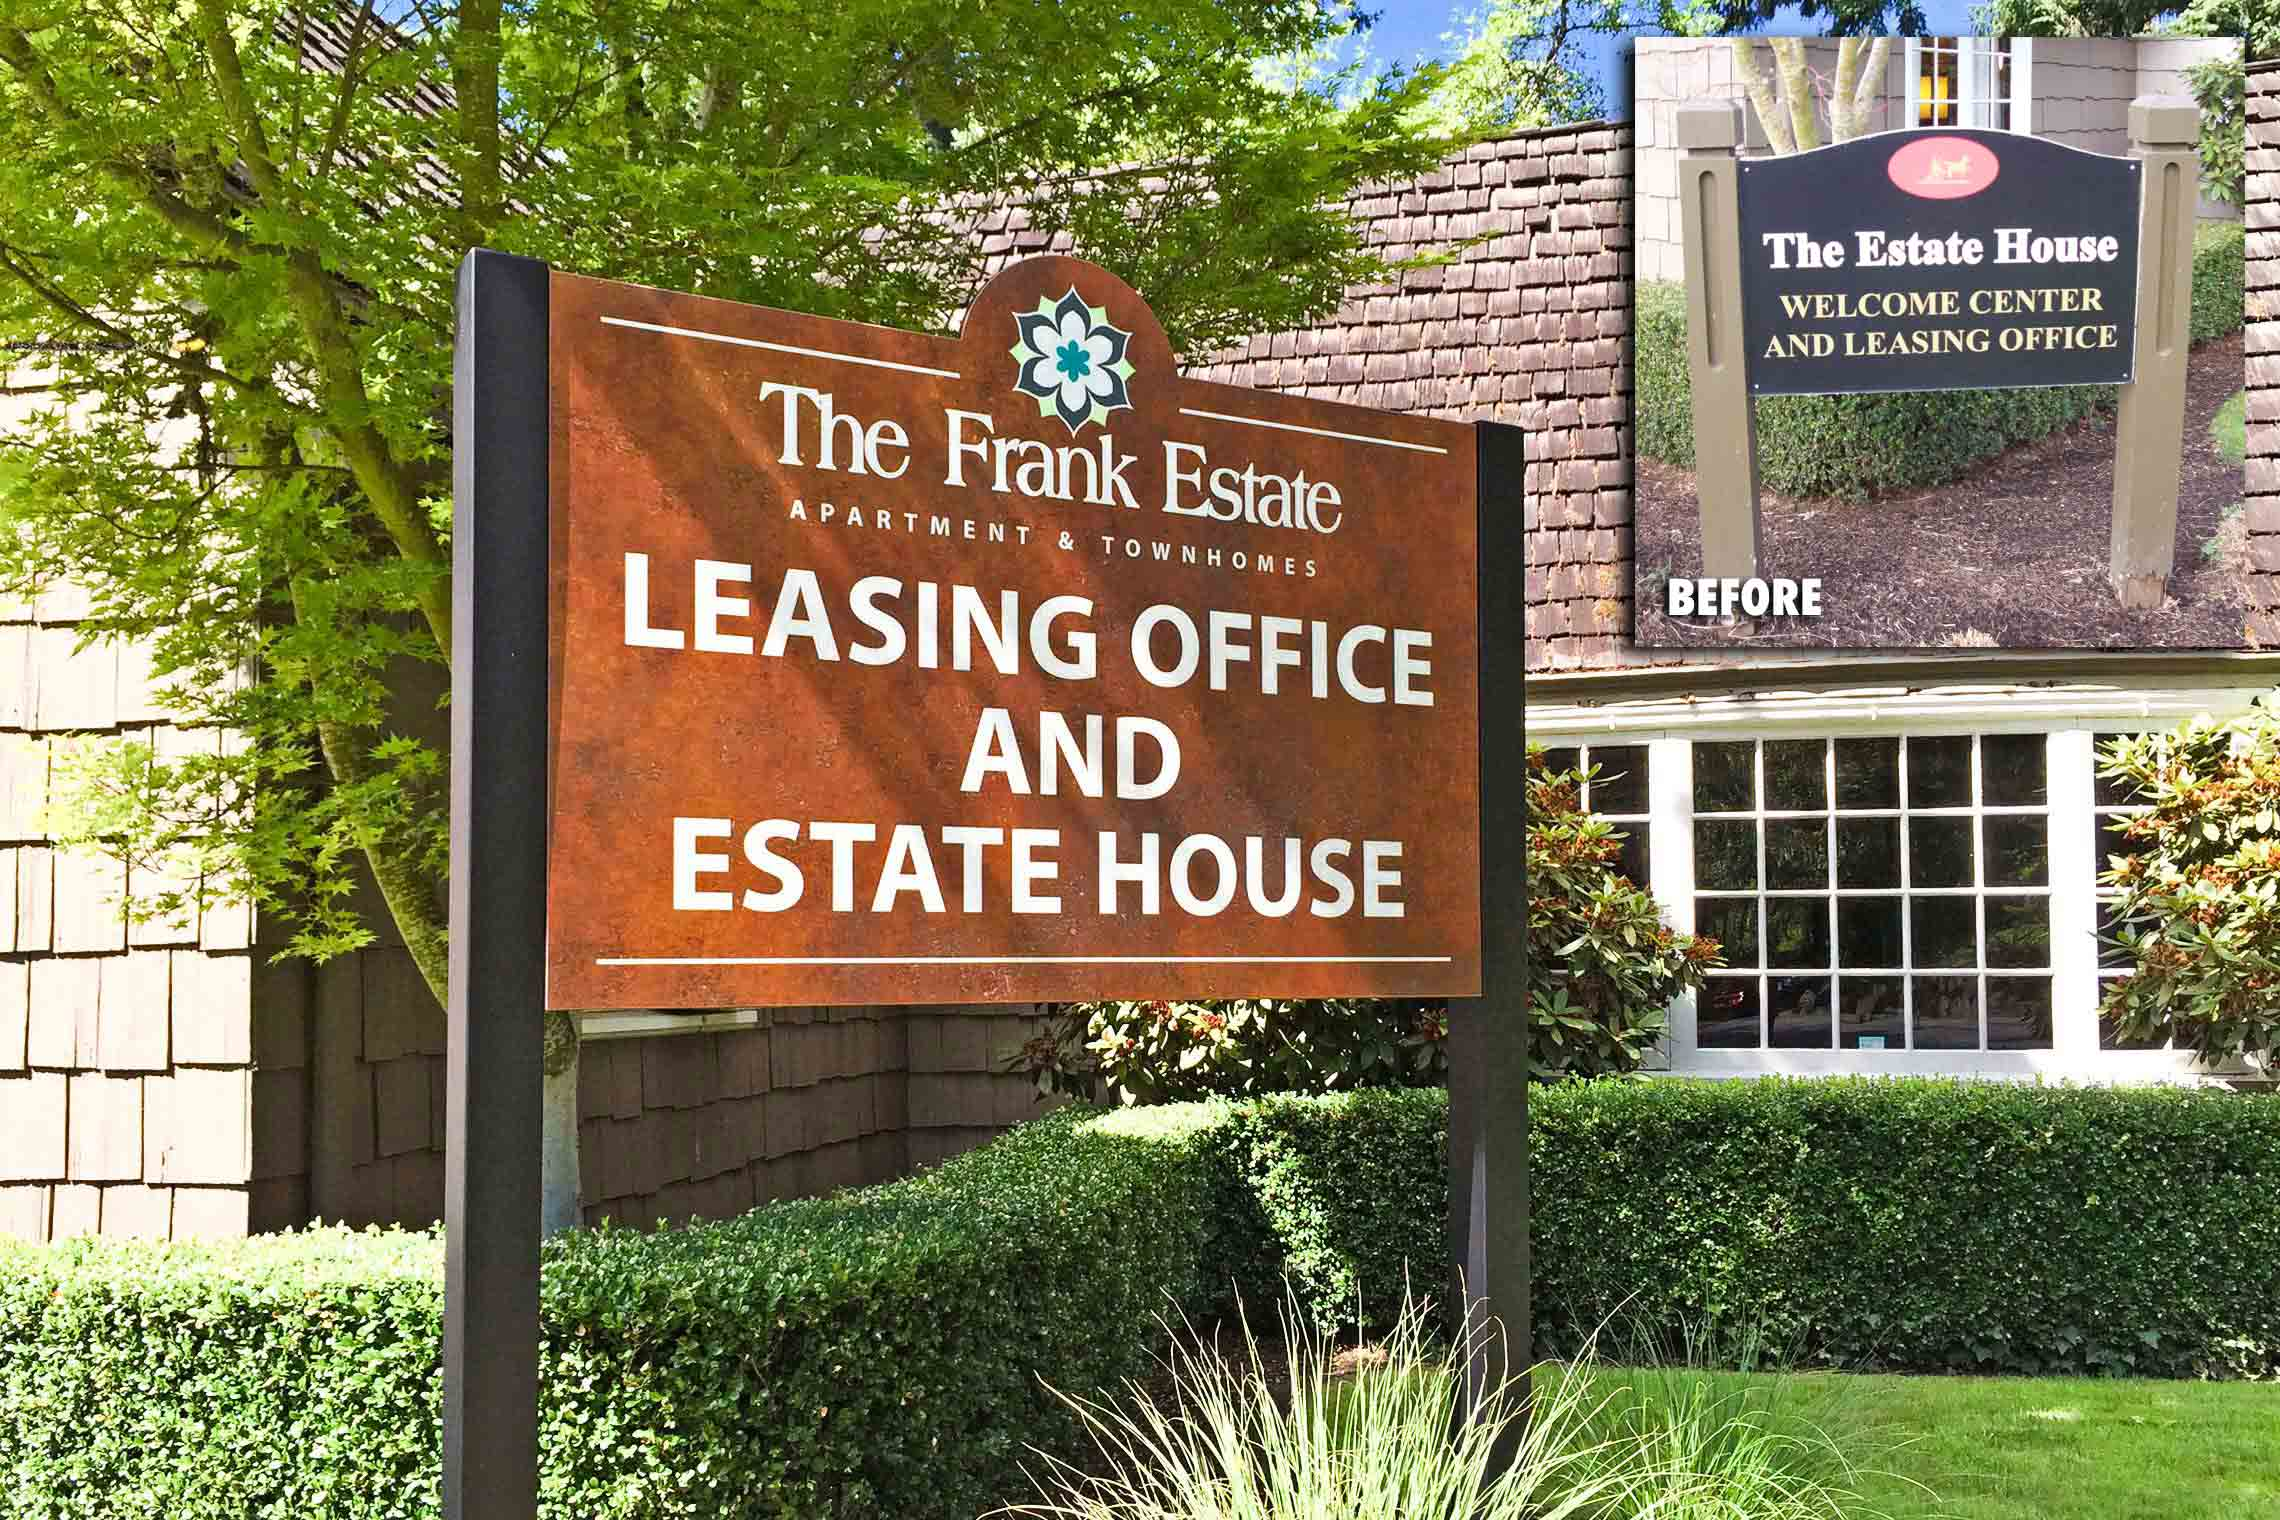 The Frank Estate Apartment & Townhomes Leasing Office and Estate House ID on Post